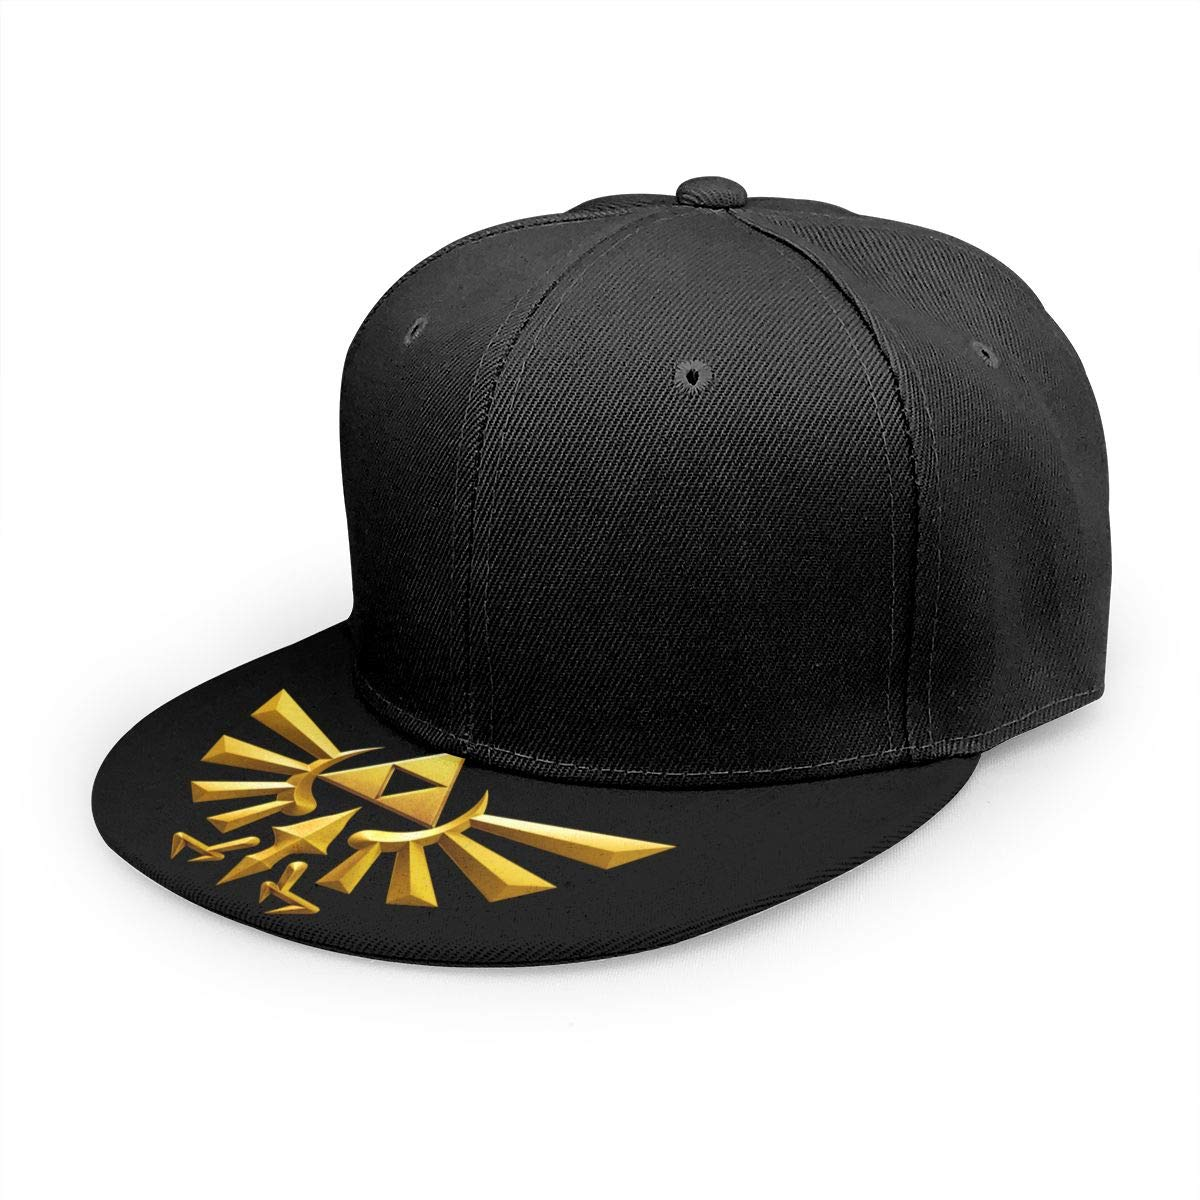 Adjustable Women Men The-Legend-of-Zelda Print Baseball Cap Flat Brim Cap Hats Hip Hop Snapback Sun Hat Boys Girls Black by Apolonia